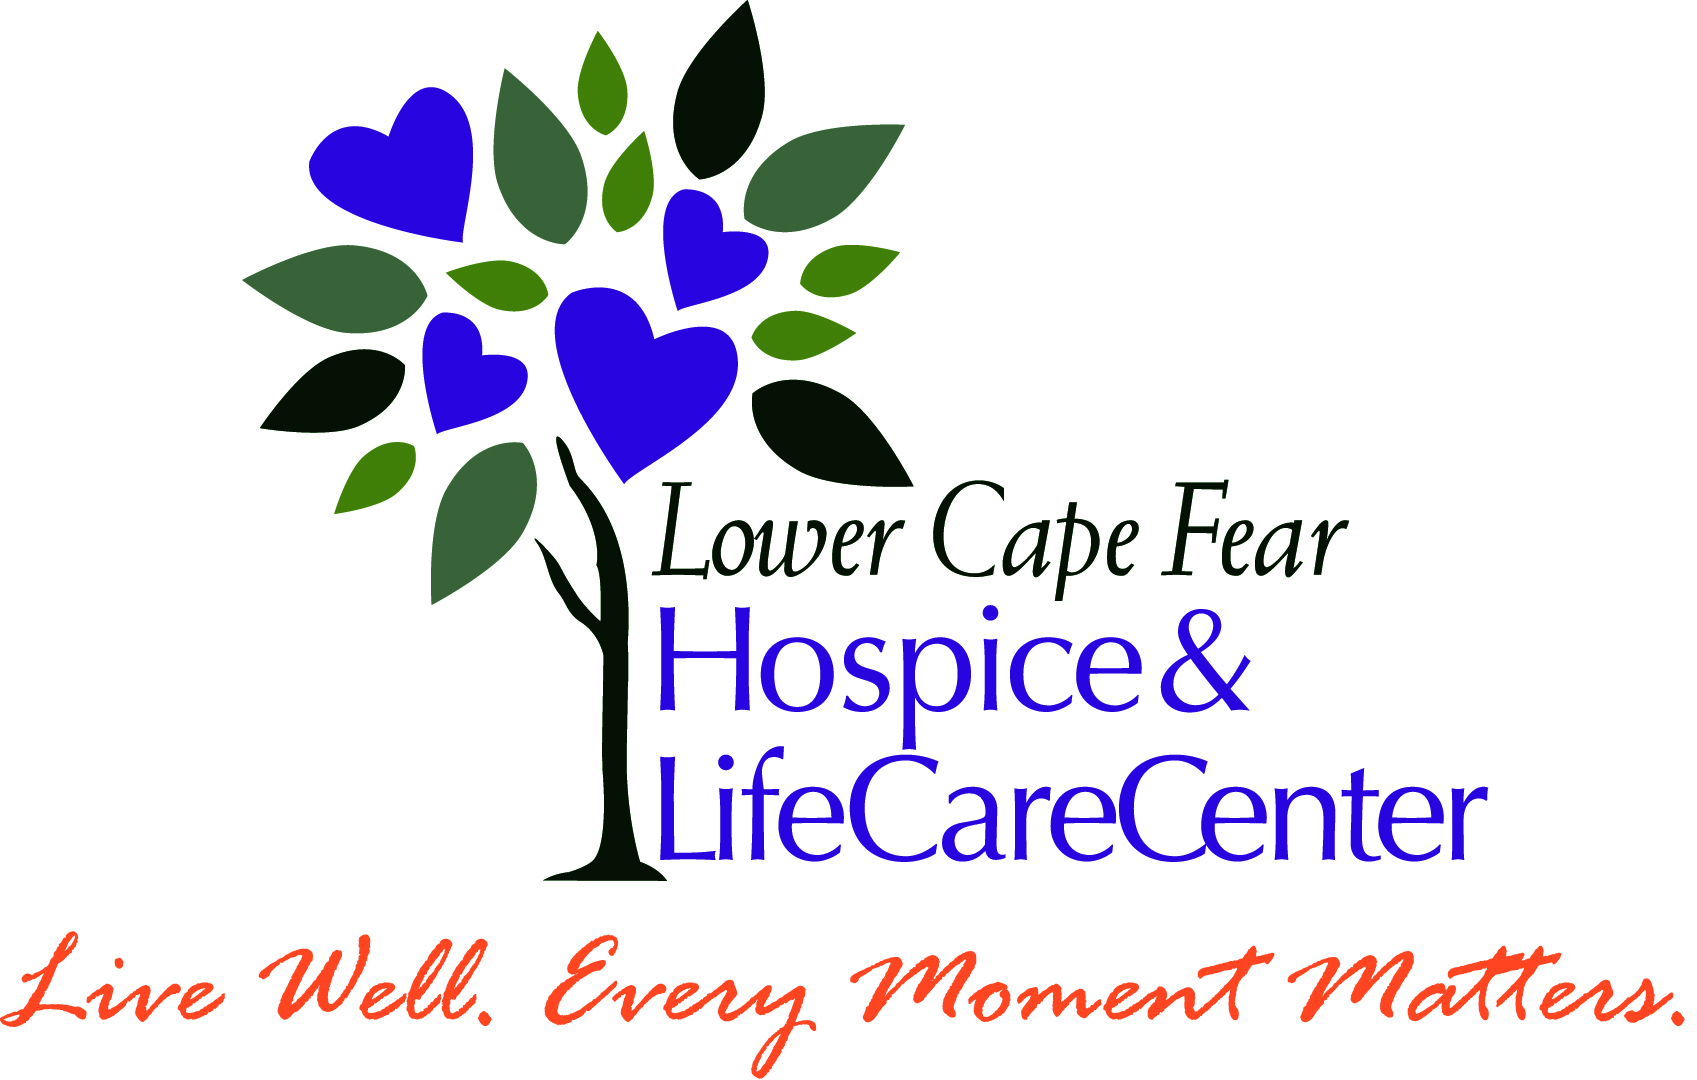 Lower Cape Fear Hospice encourages everyone to complete advance care directives.